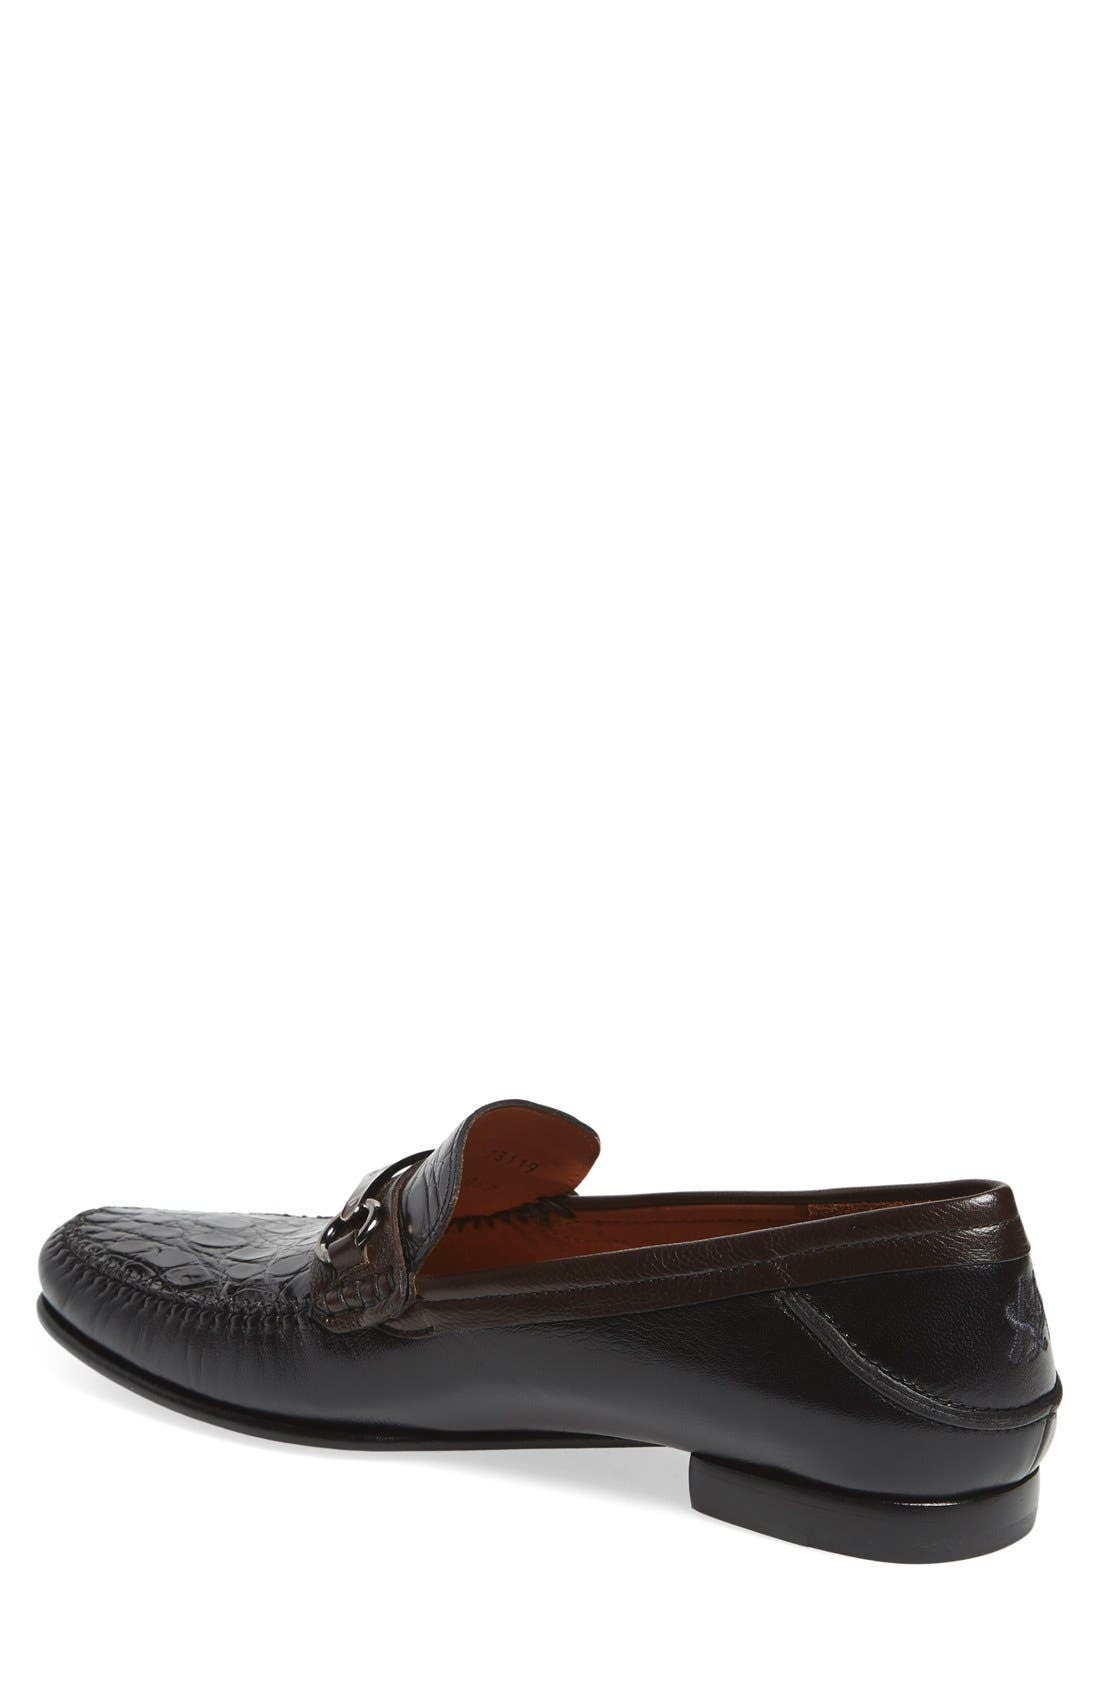 'Gaudi Venetian' Genuine Crocodile Bit Loafer,                             Alternate thumbnail 3, color,                             011